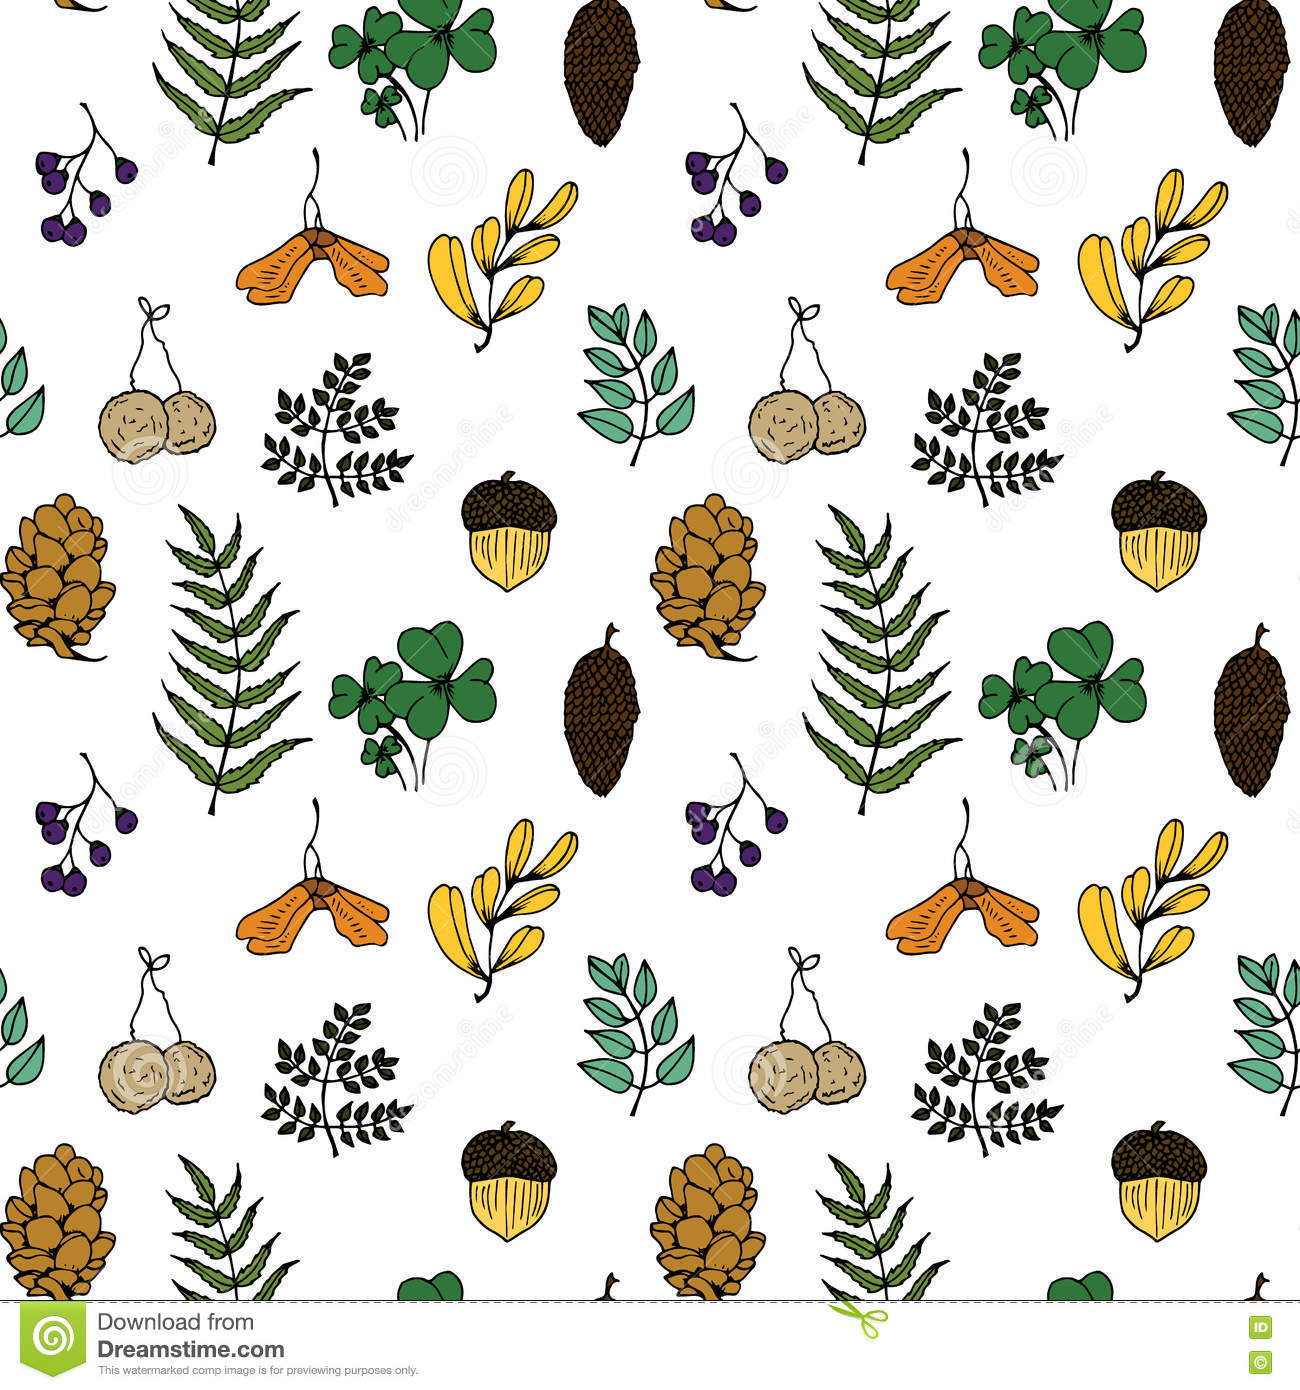 Forest fruits clipart #3